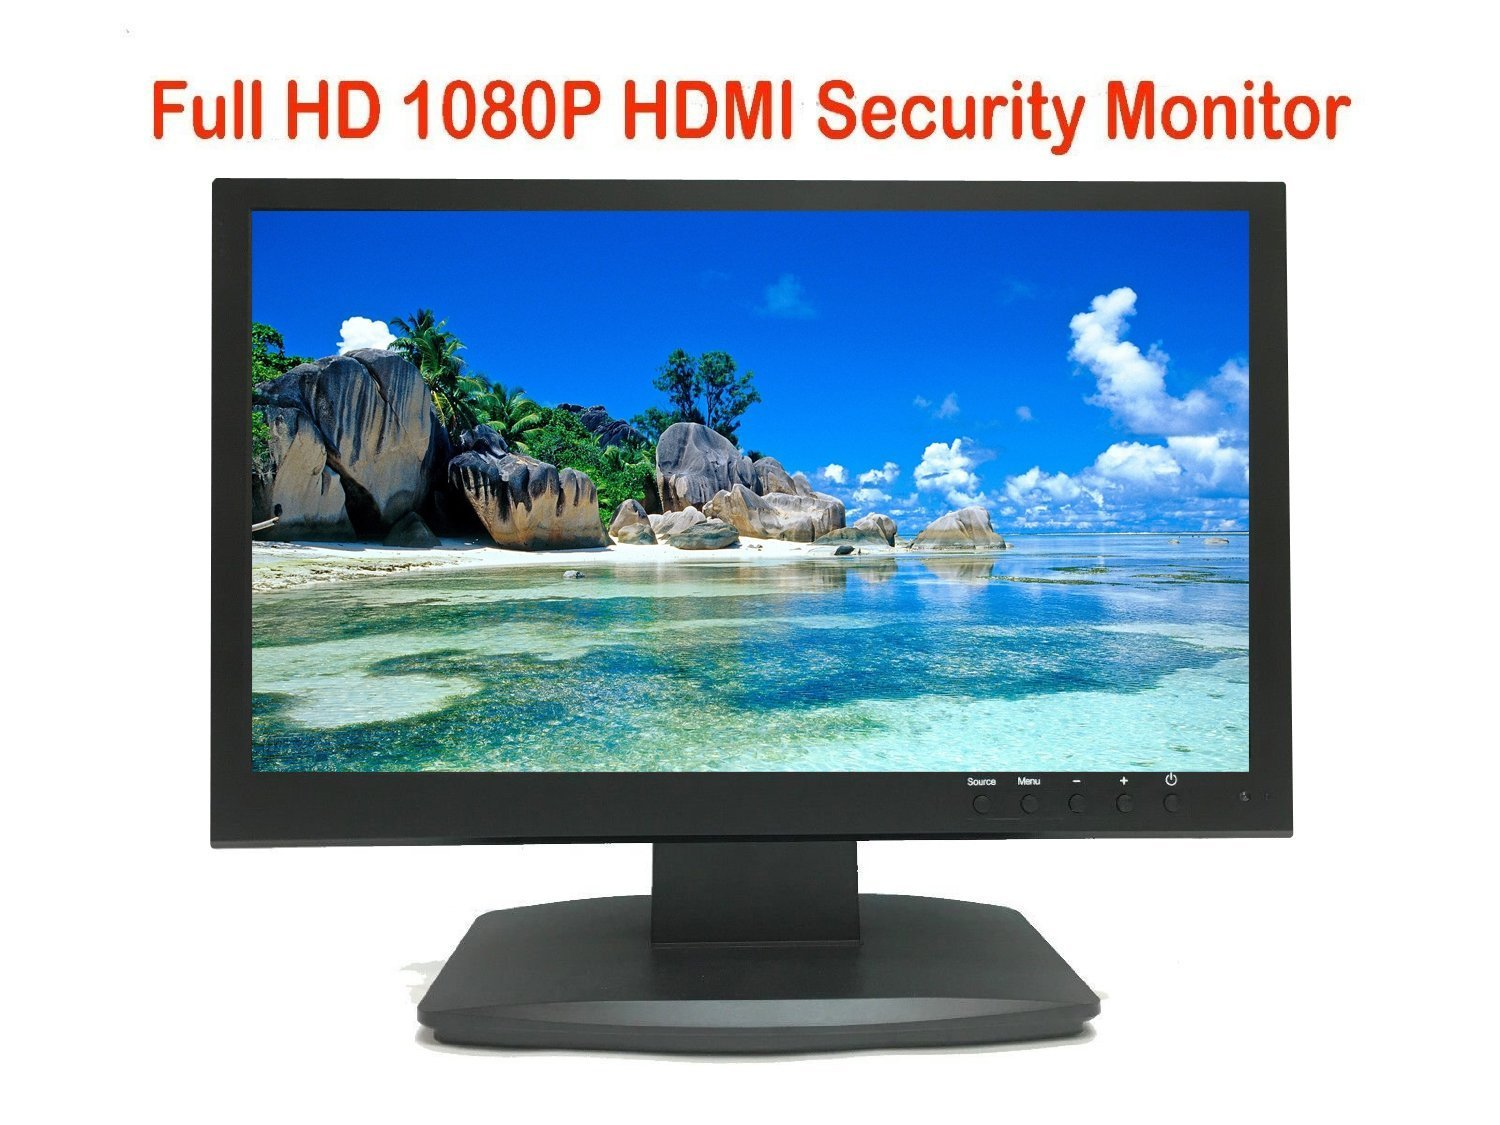 101AV Security Monitor 19.5 Inch True Full HD 1080P 1920x1080 3D Comb Filter HDMI VGA and Looping BNC Inputs Wide Screen PC Computer monitor for Home Office Surveillance optional monitor mount